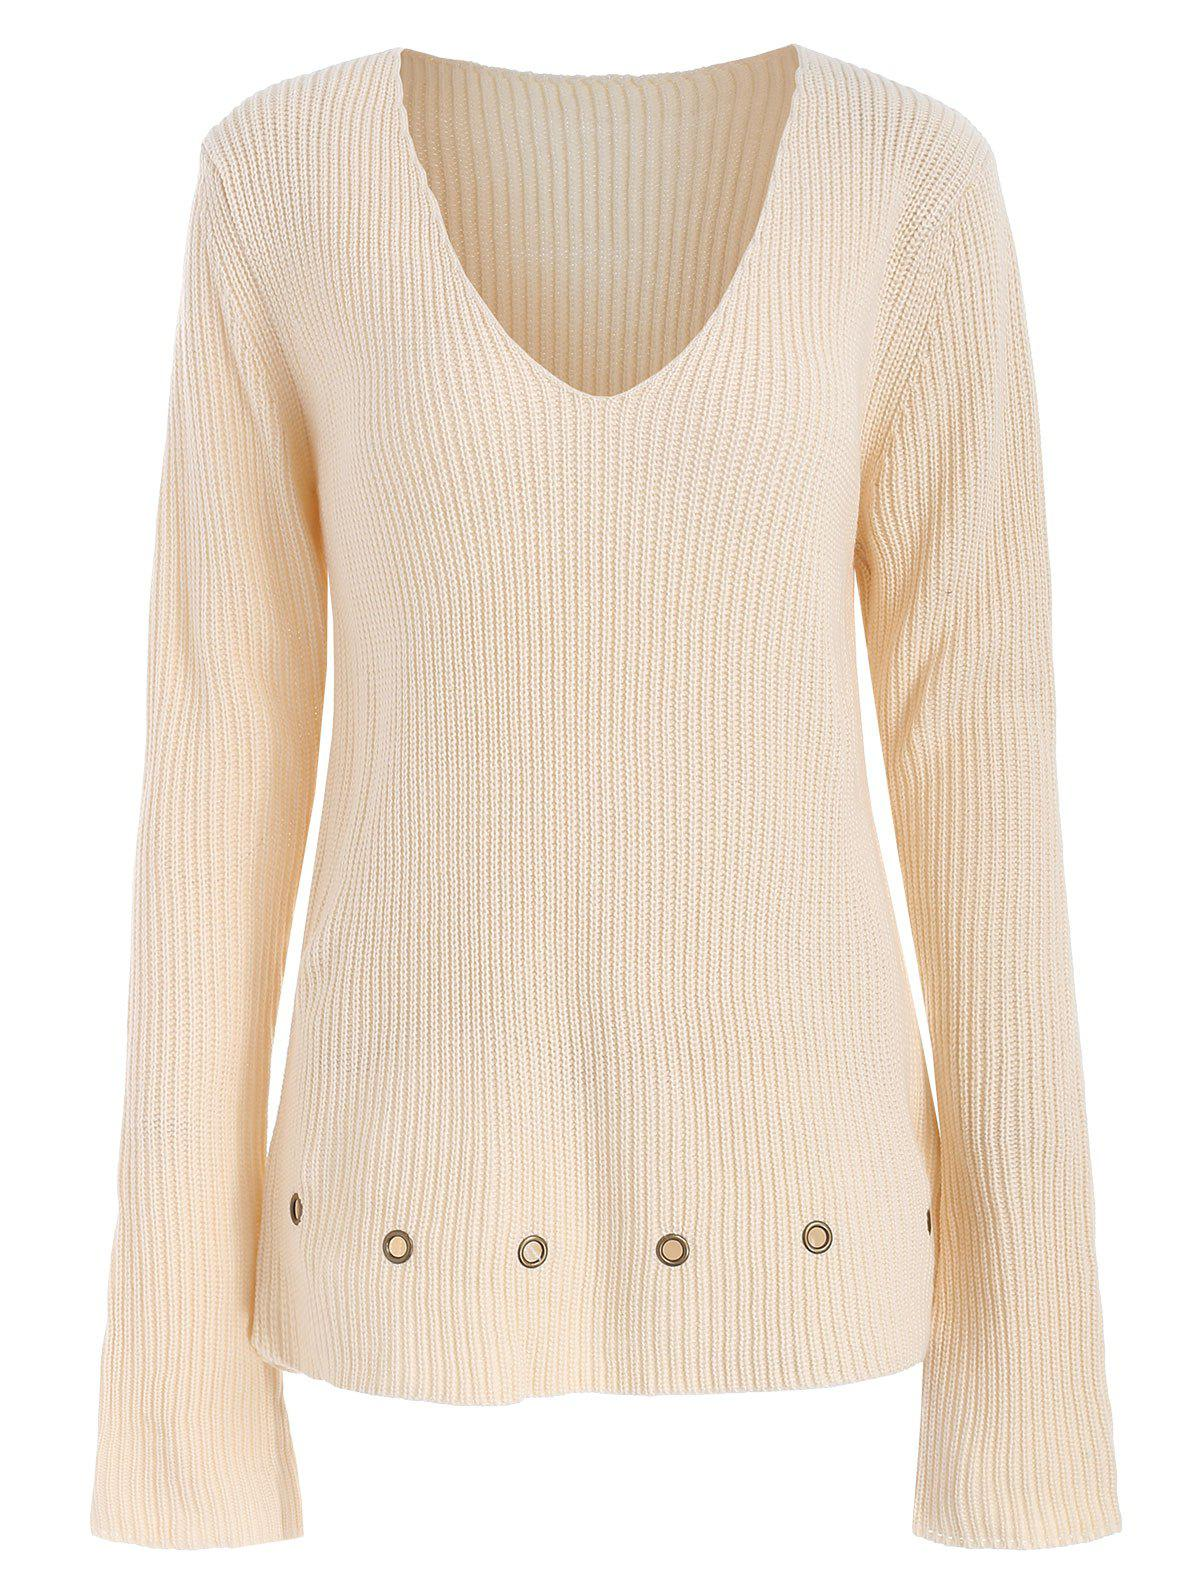 Shop Grommets Embellished Deep V Neck Sweater